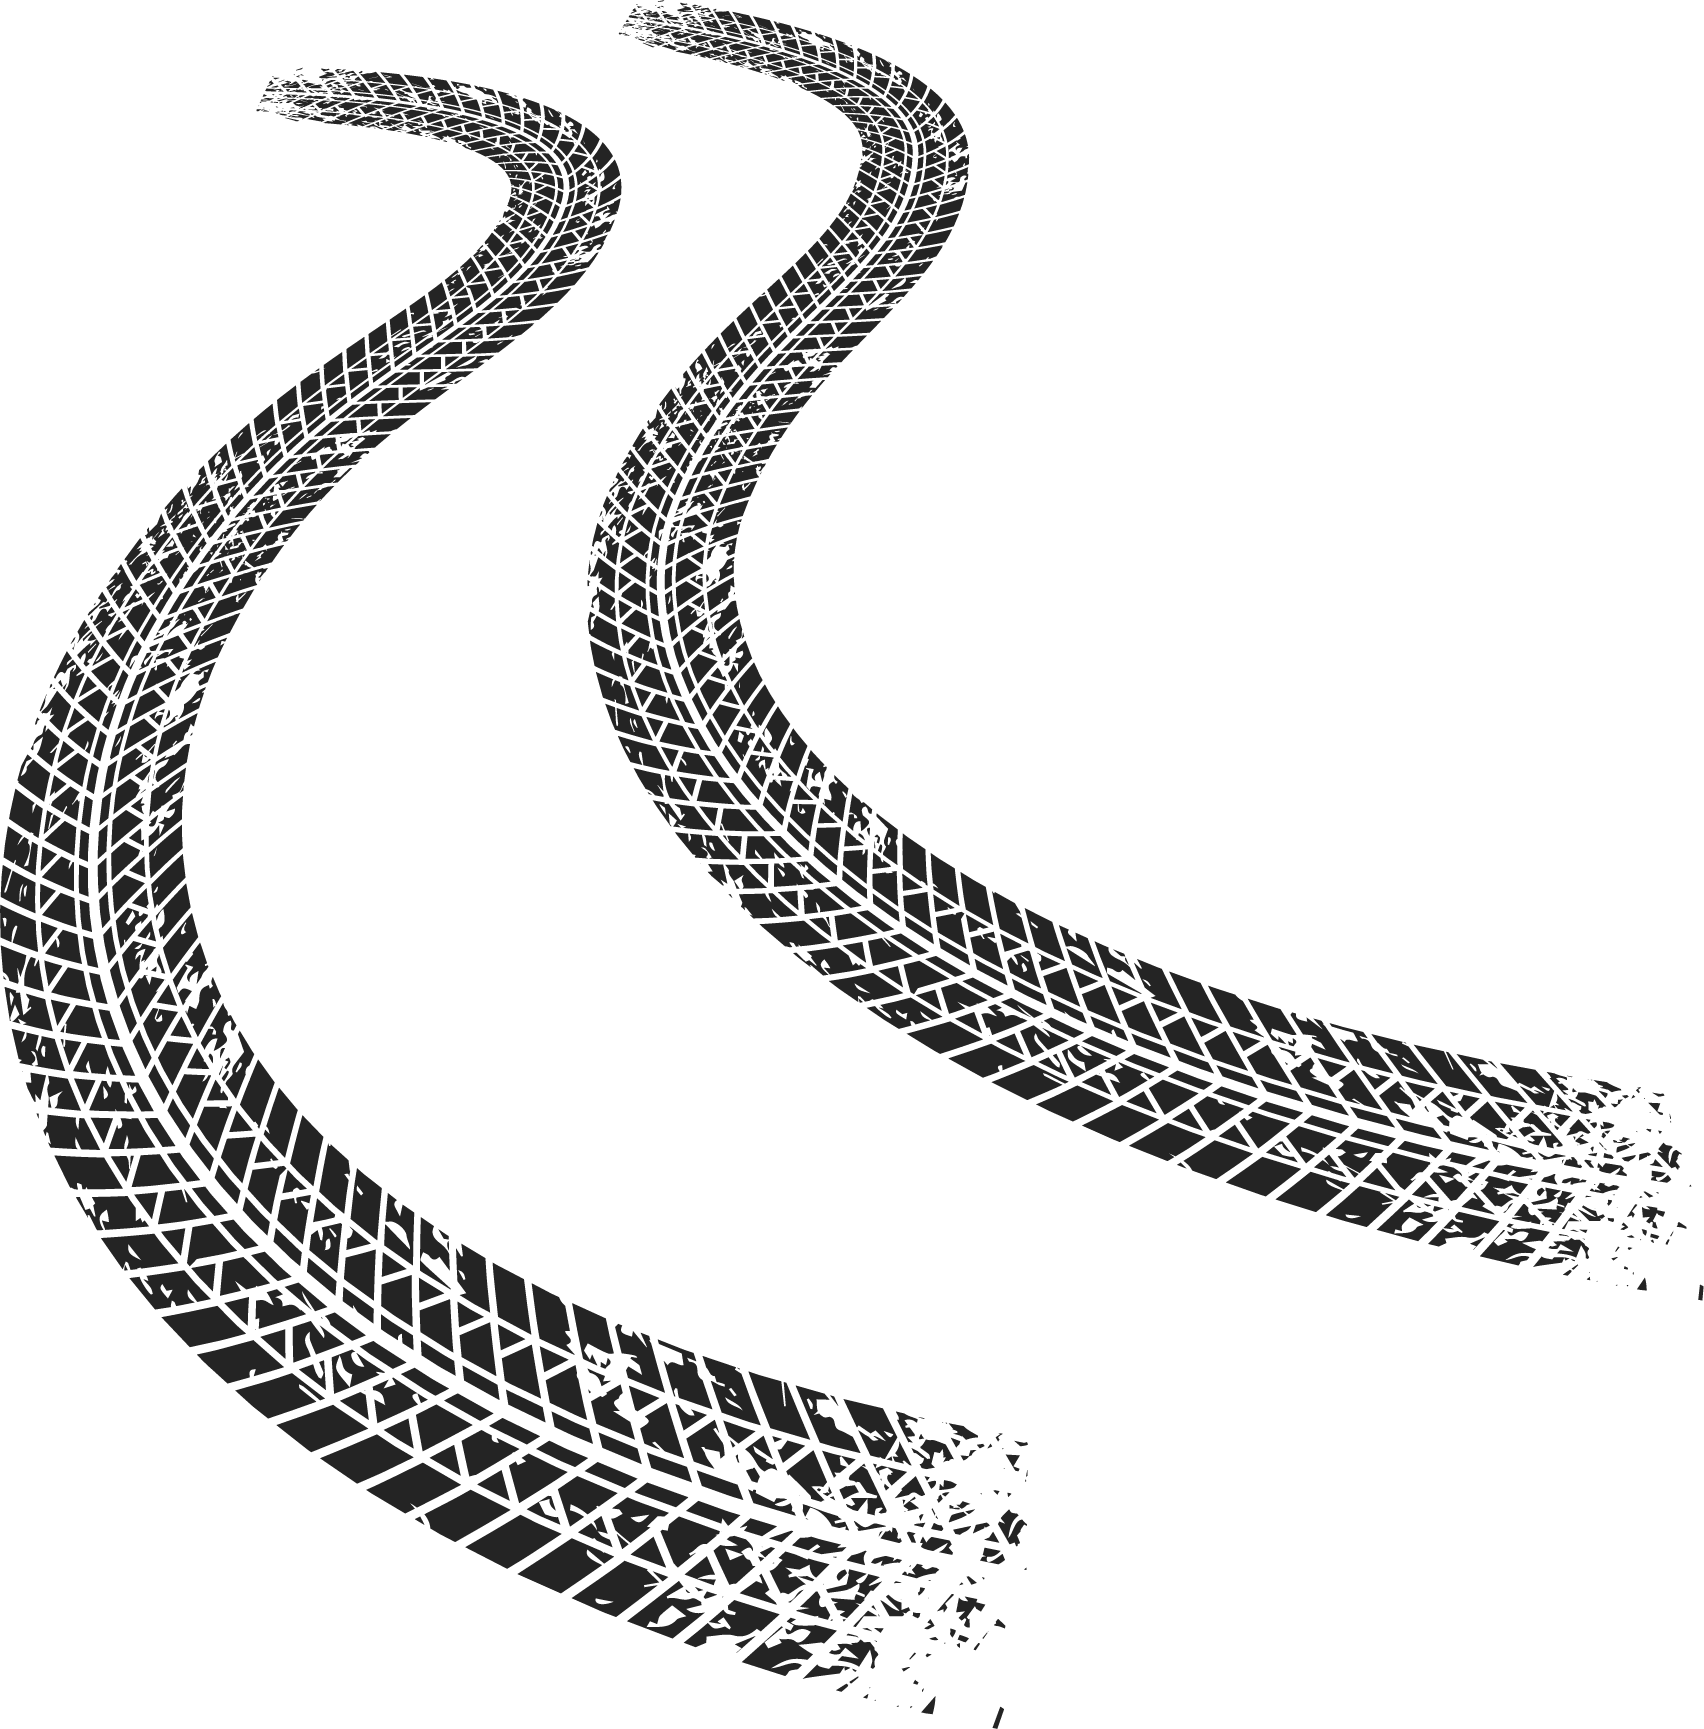 Tire tracks vector png. Car euclidean motorcycle icon